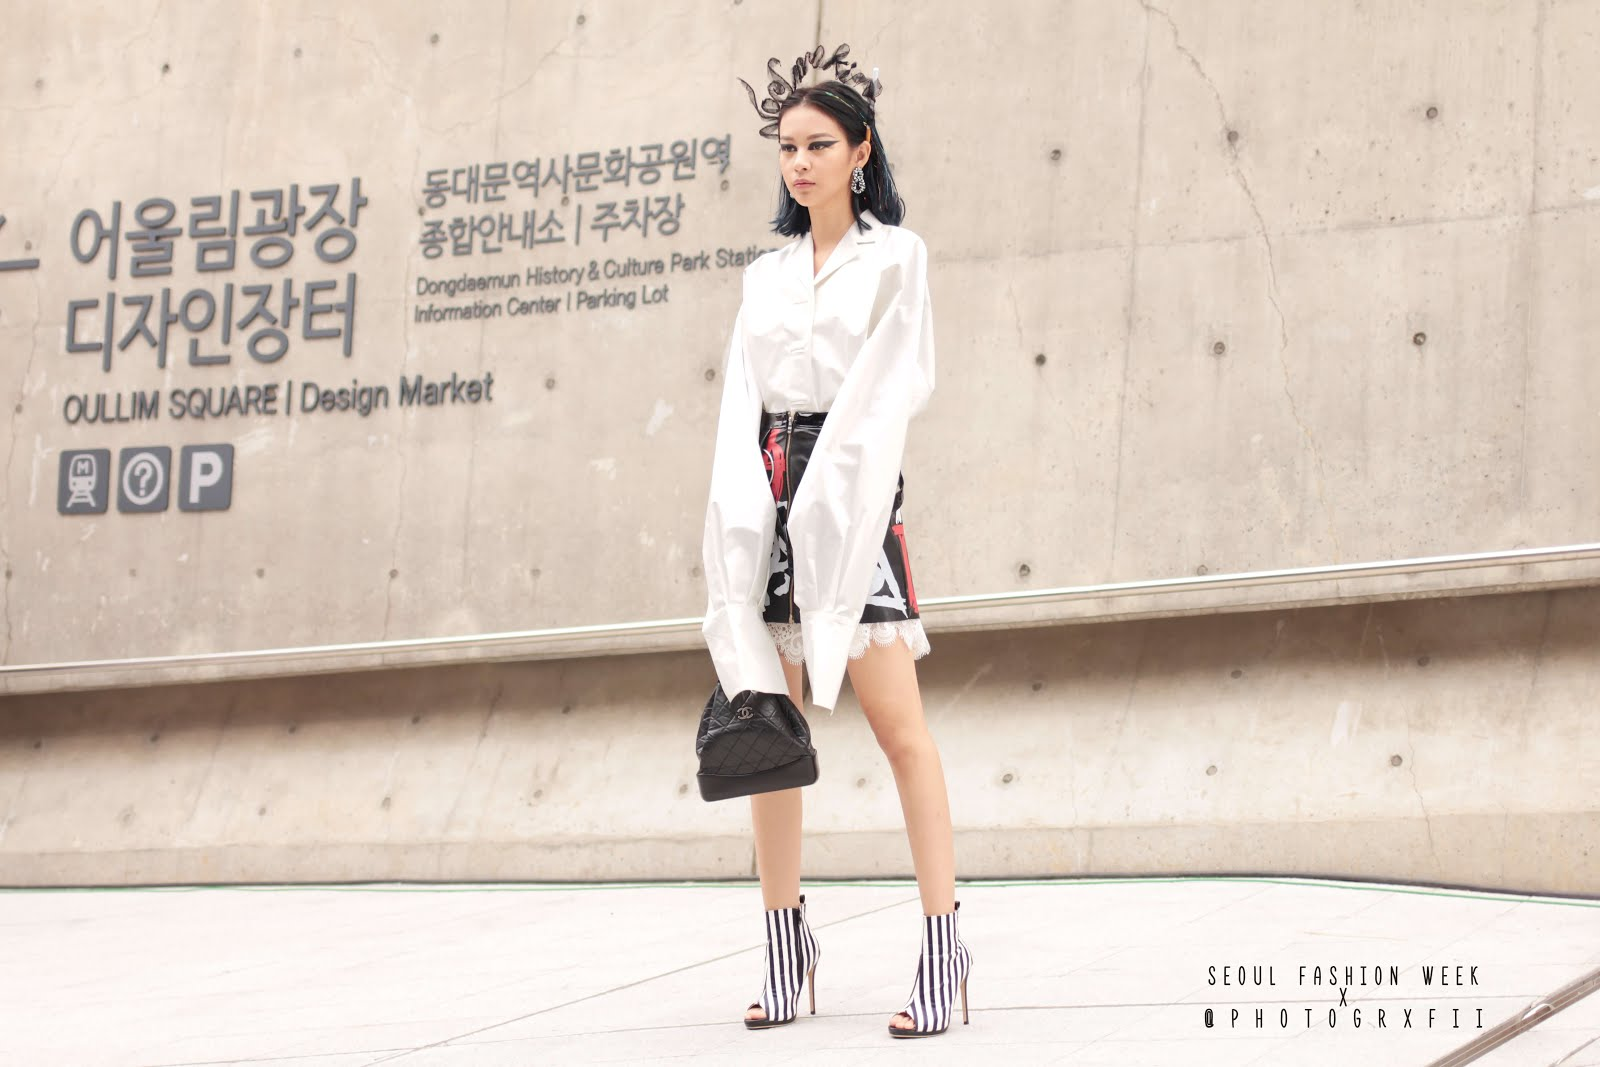 seoul fashion week ss18 leather skirt styling inspiration